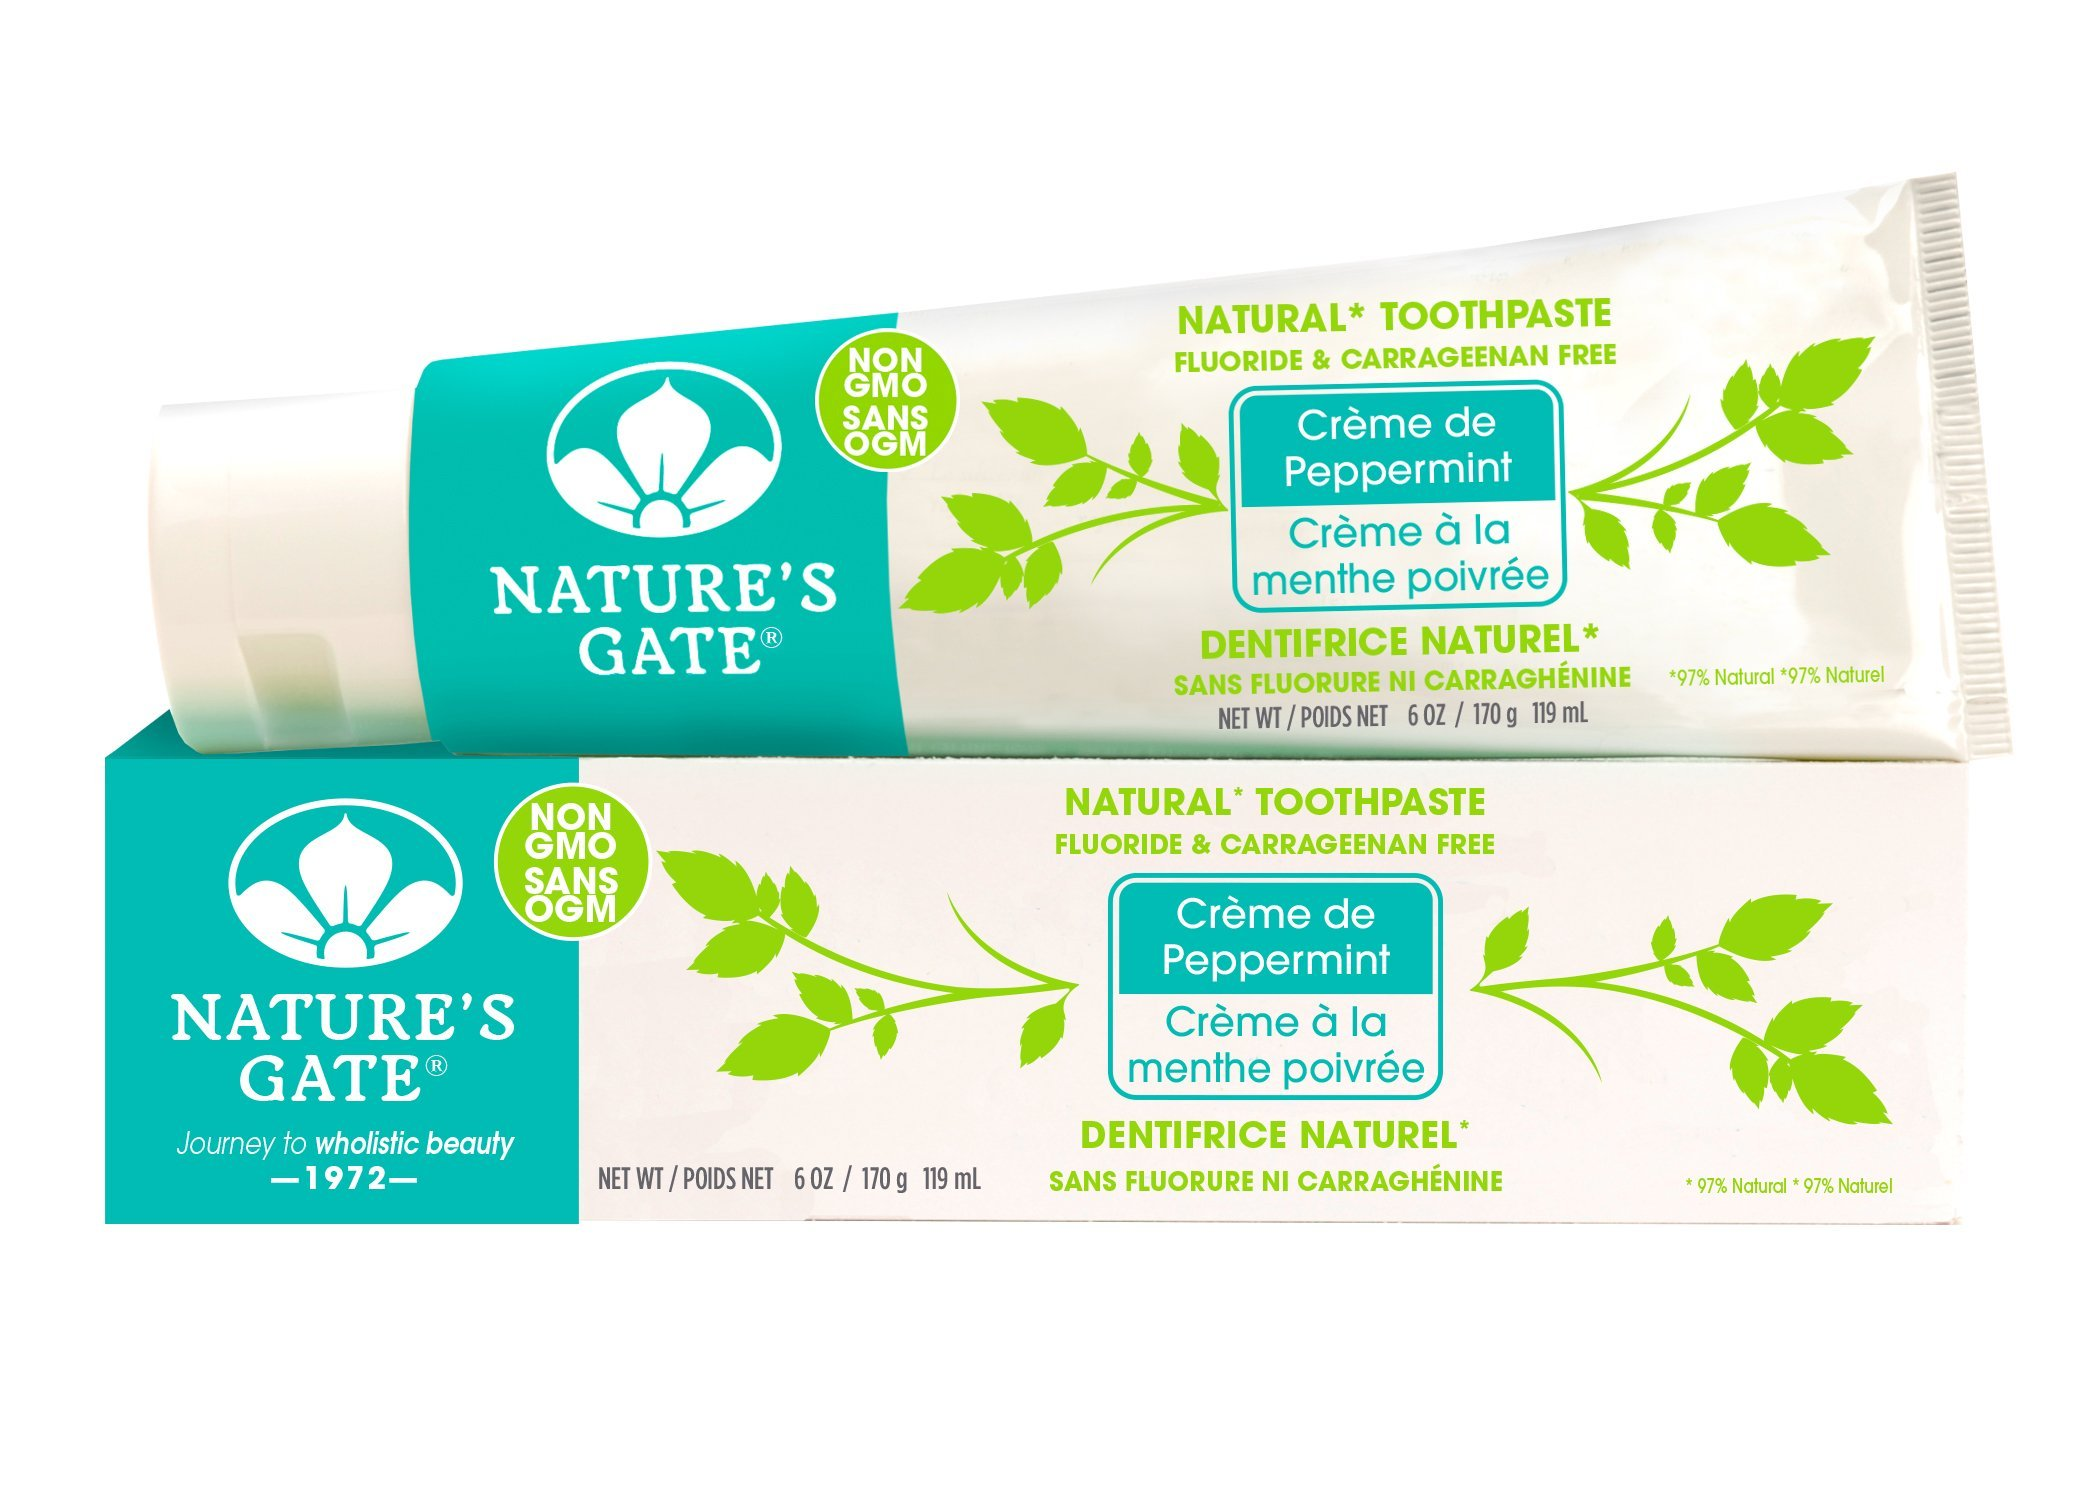 Nature's Gate Natural Toothpaste, Creme de Peppermint, Fluoride Free, Vitamin C; Vegan, Non GMO, Carageenan Free, Gluten Free, Soy Free, Paraben Free, Cruelty Free, 6 Ounce Recyclable Tube (Pack of 6) by Nature's Gate